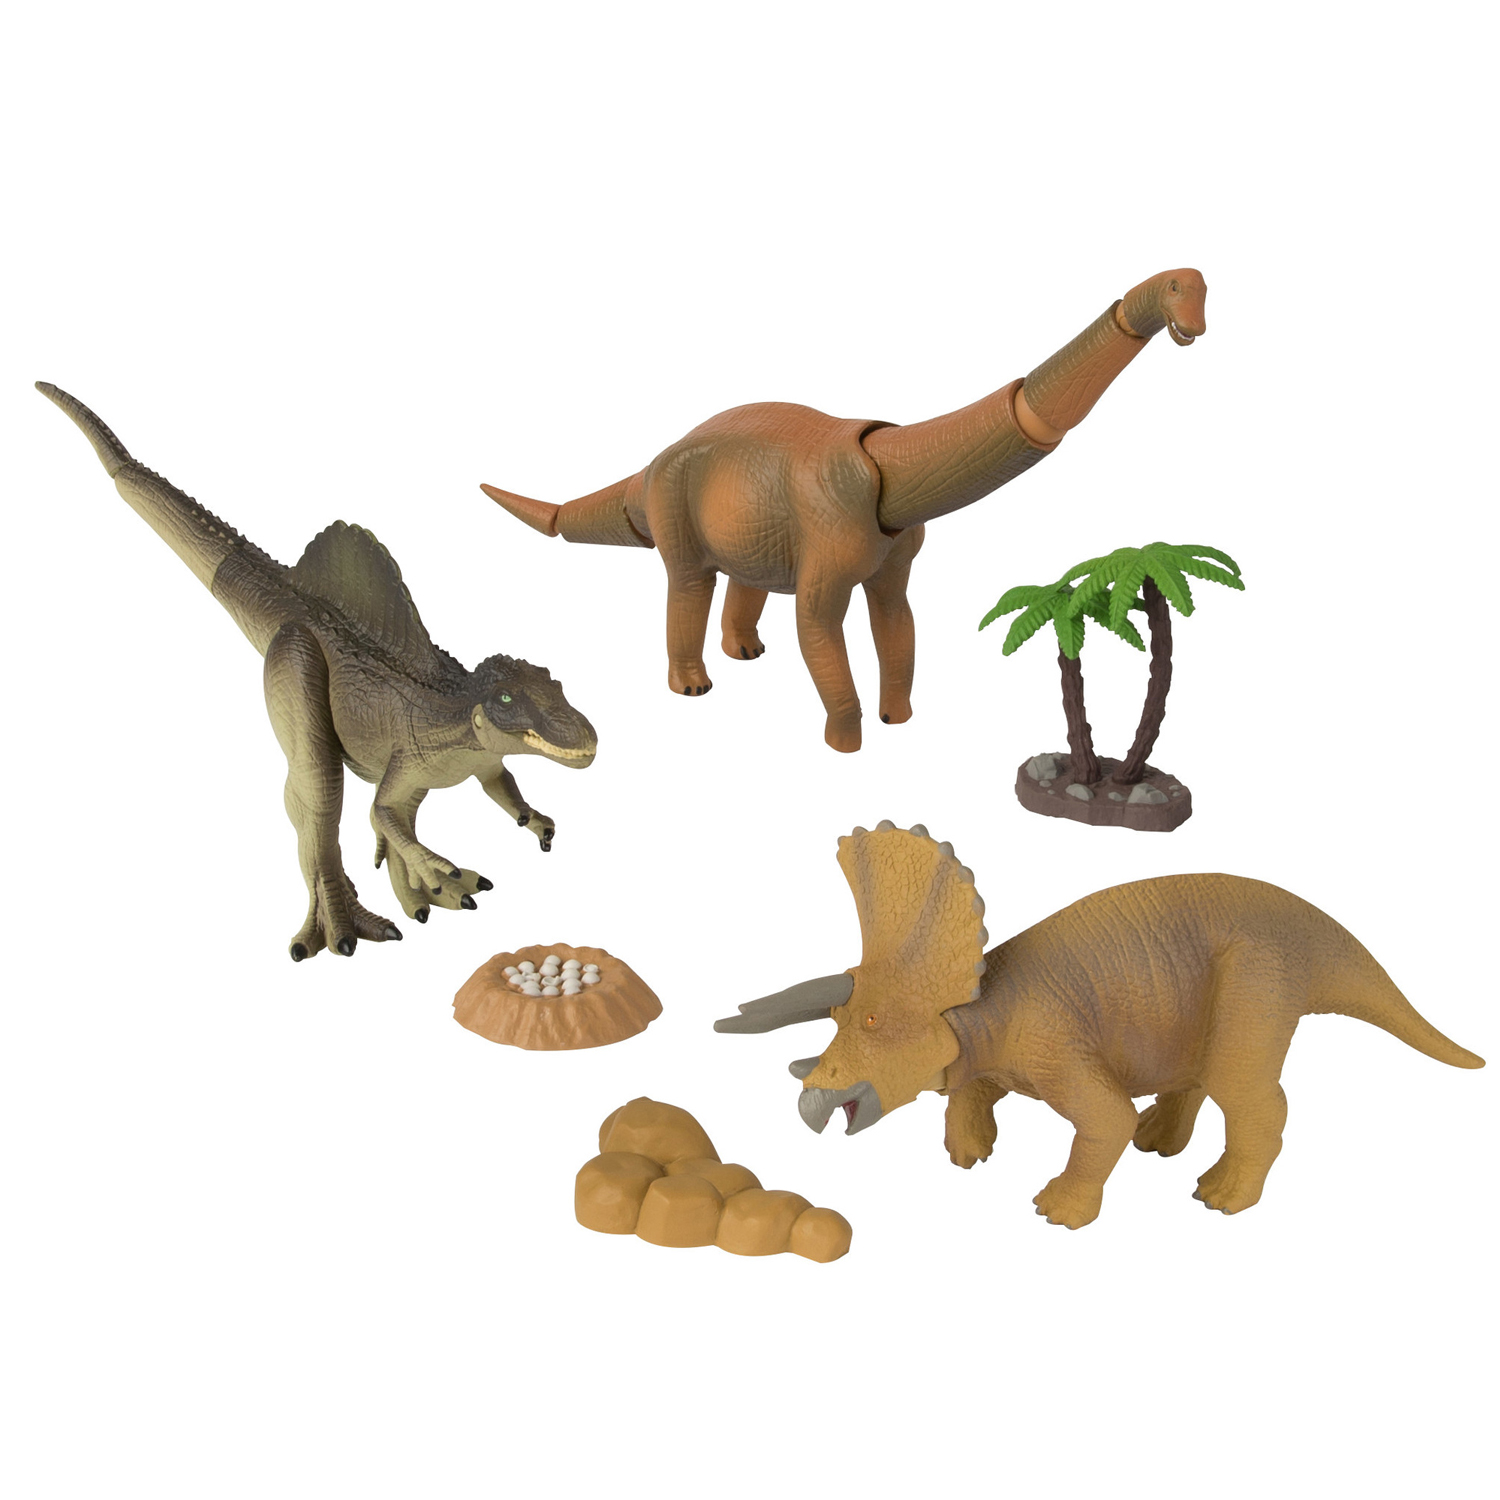 TOMY ANIA Dino Stomp Value Pack: Tricerotops, Brachiosaurus, Spinosaurus with Tree, Rocks and a Nest with Eggs